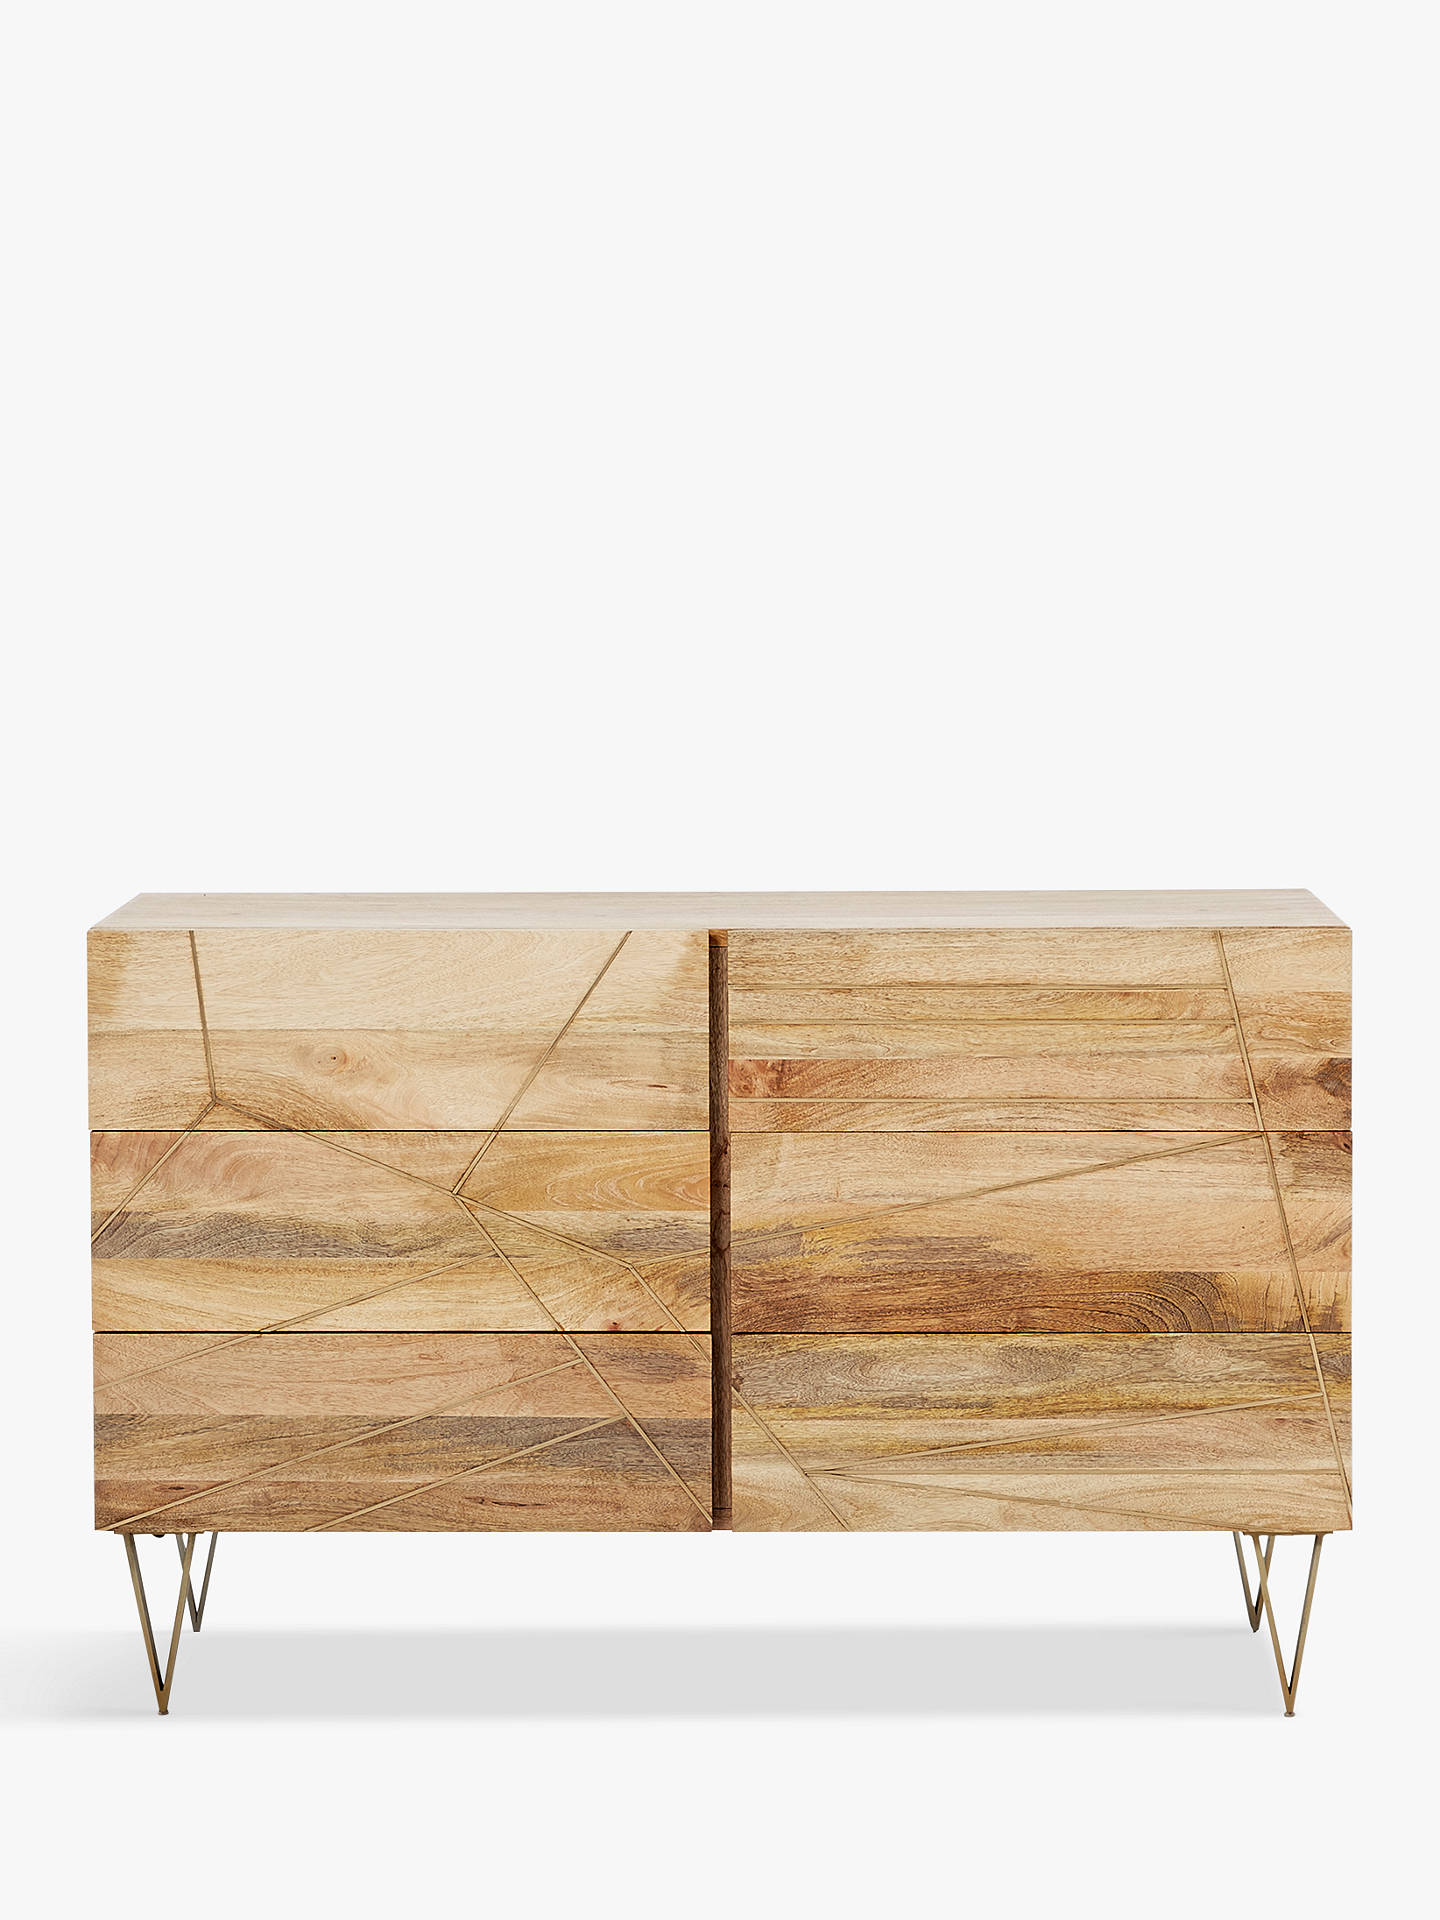 BuyRoar + Rabbit for west elm Geo Inlay 6 Drawer Chest Online at johnlewis.com